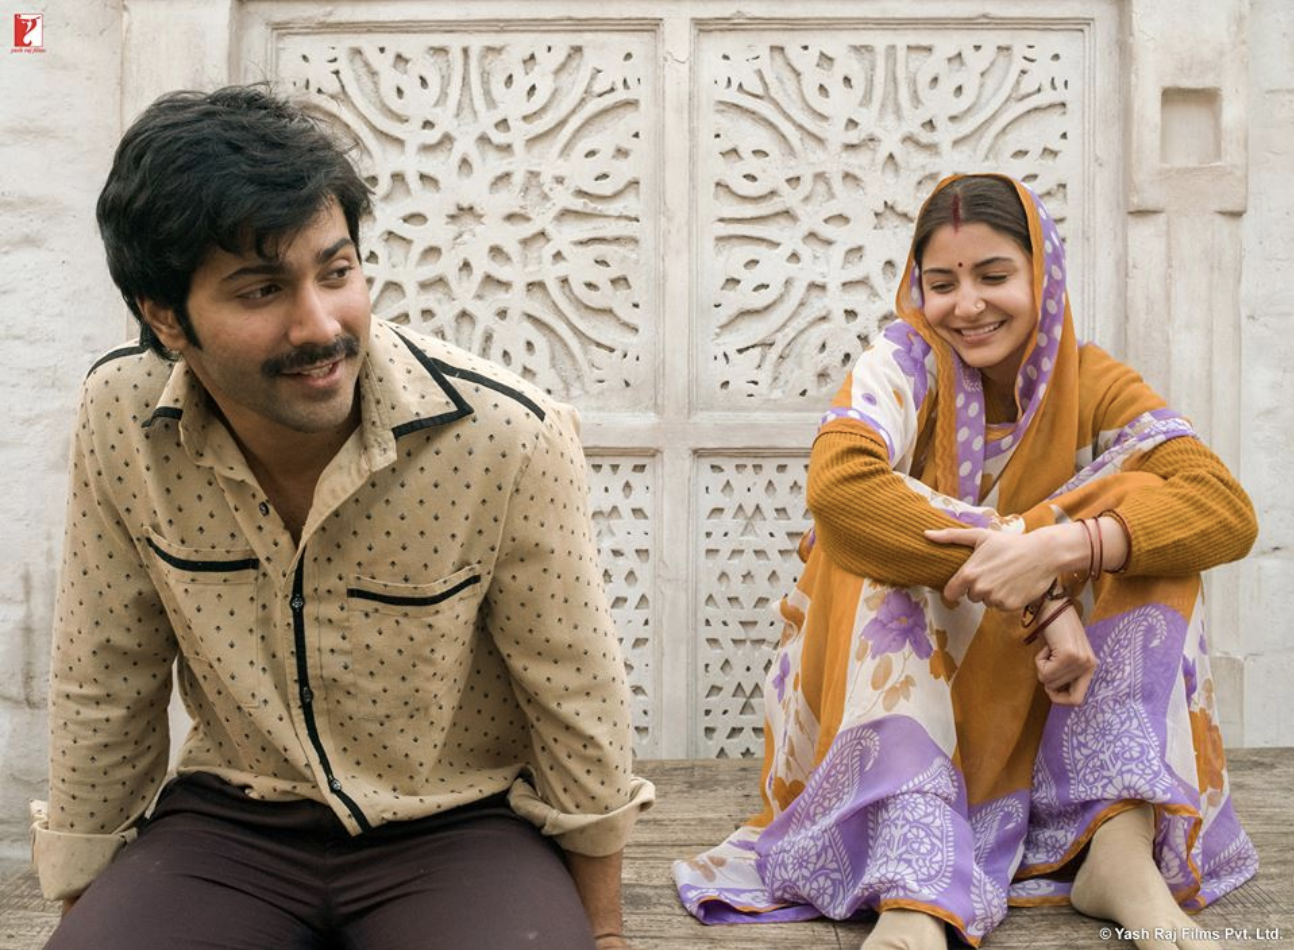 Anushka Sharma as Mamta in a de-glam avatar and Varun Dhawan as Mauji in a still from the movies #SuiDhaaga Photo courtesy: YRF